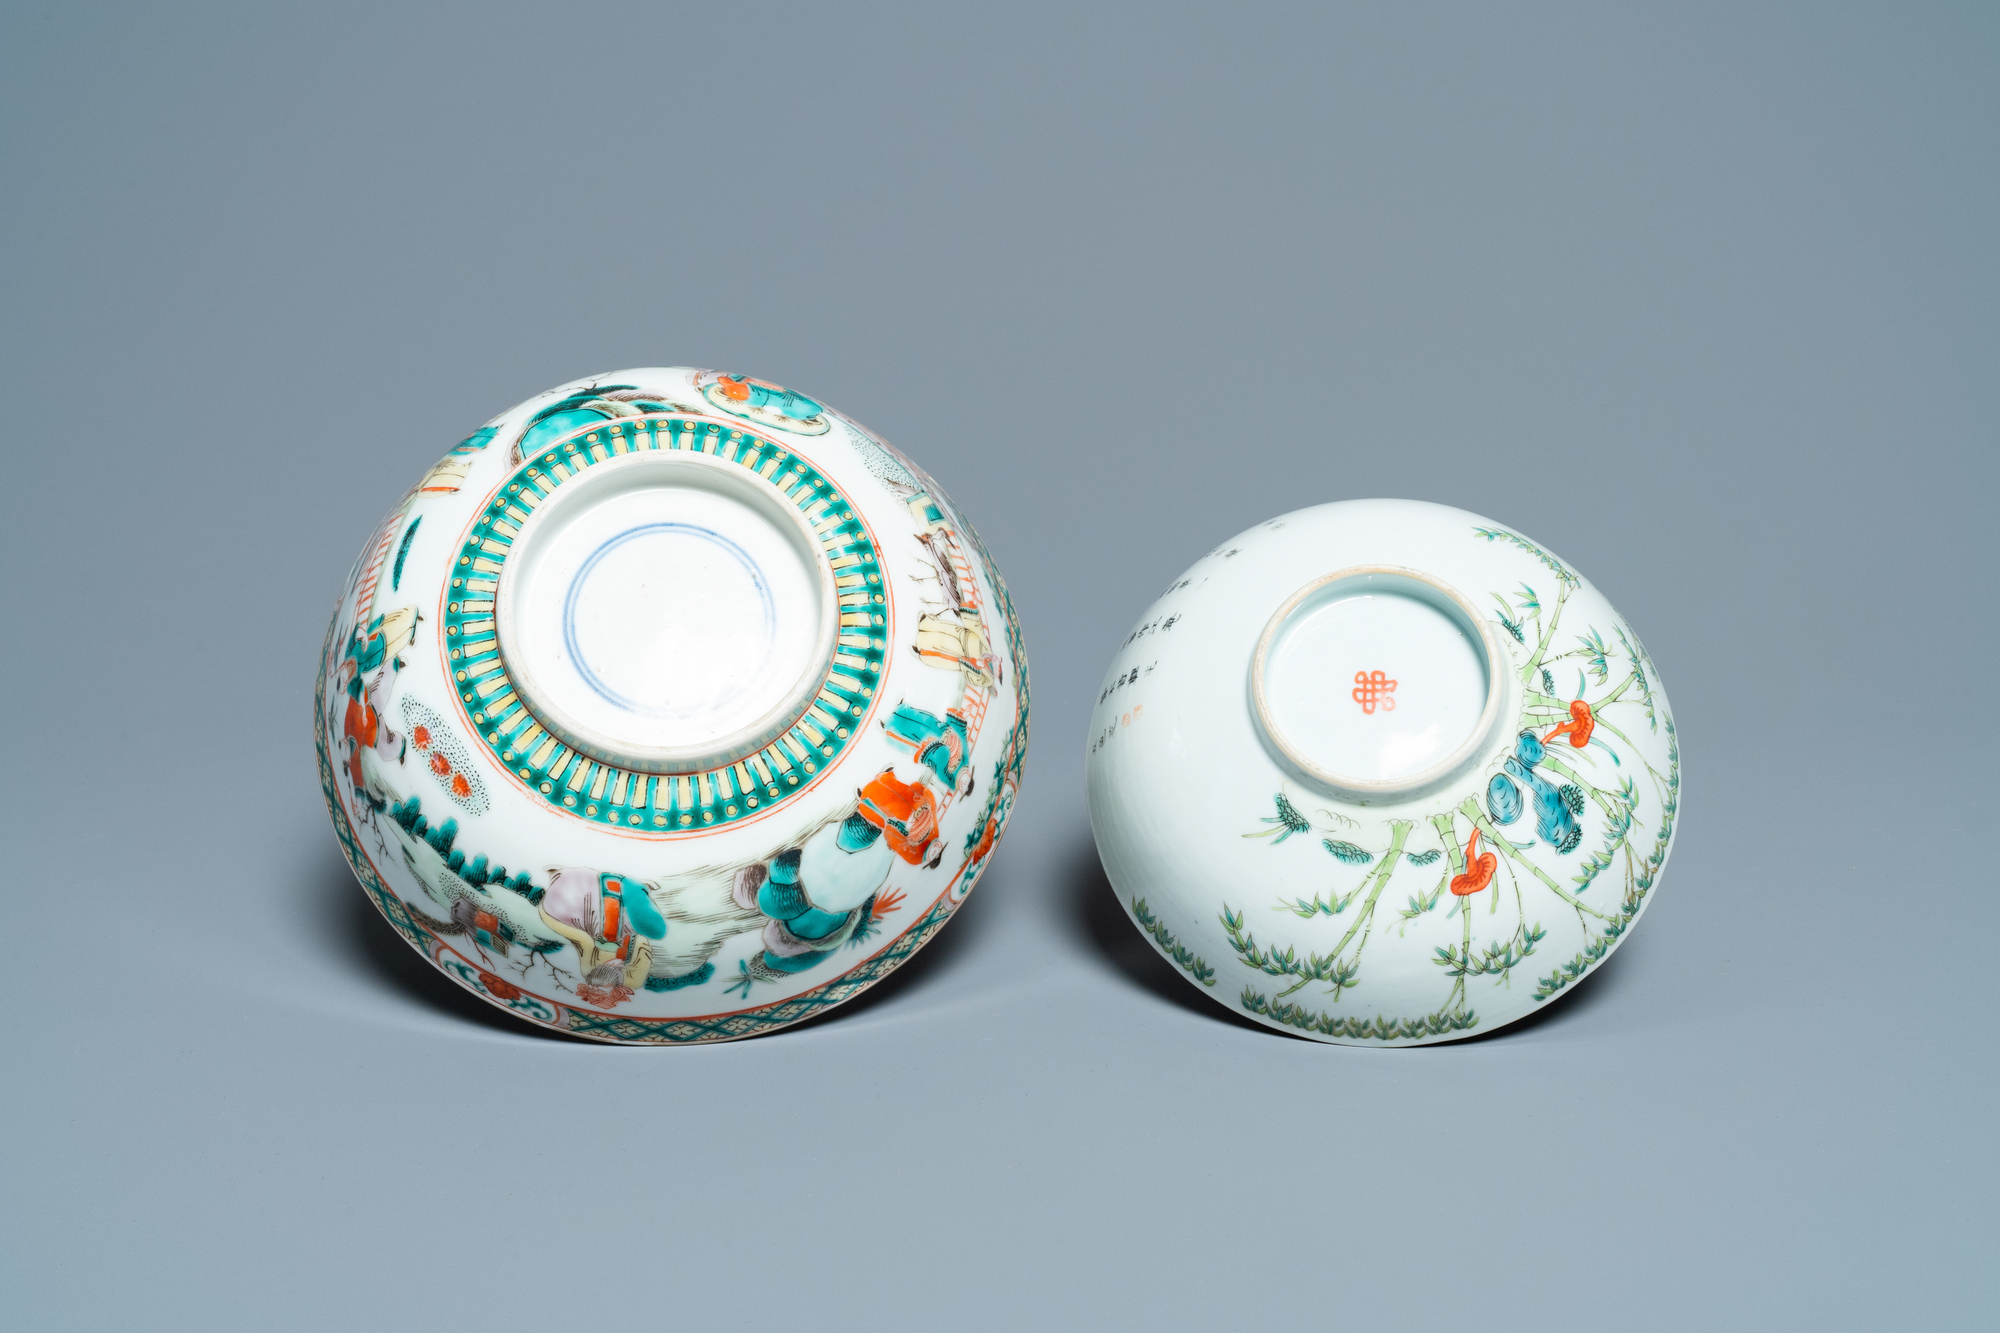 A Chinese blue and white jardiniere and two famille verte bowls, 19/20th C. - Image 13 of 13